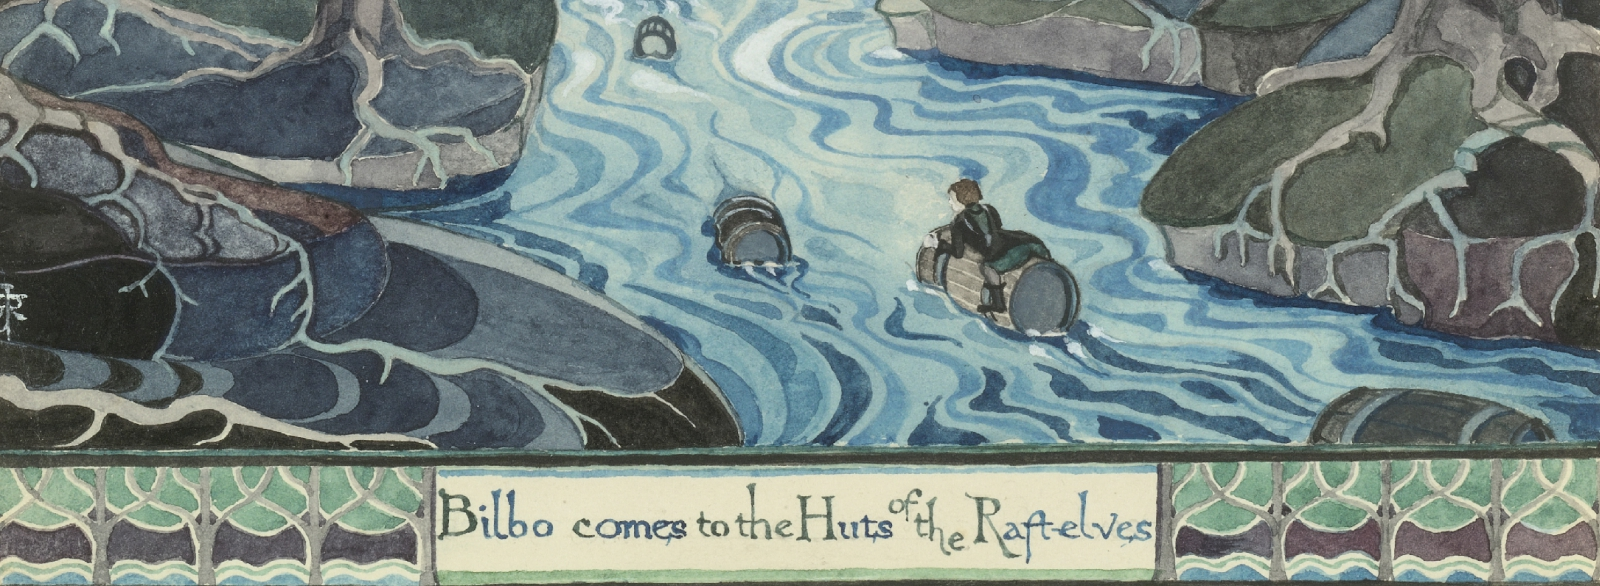 J.R.R. Tolkien, Bilbo comes to the Huts of the Raft-Elves (detail), The Hobbit, chap. IX, 1937. Watercolour on paper. © The Tolkien Estate Limited